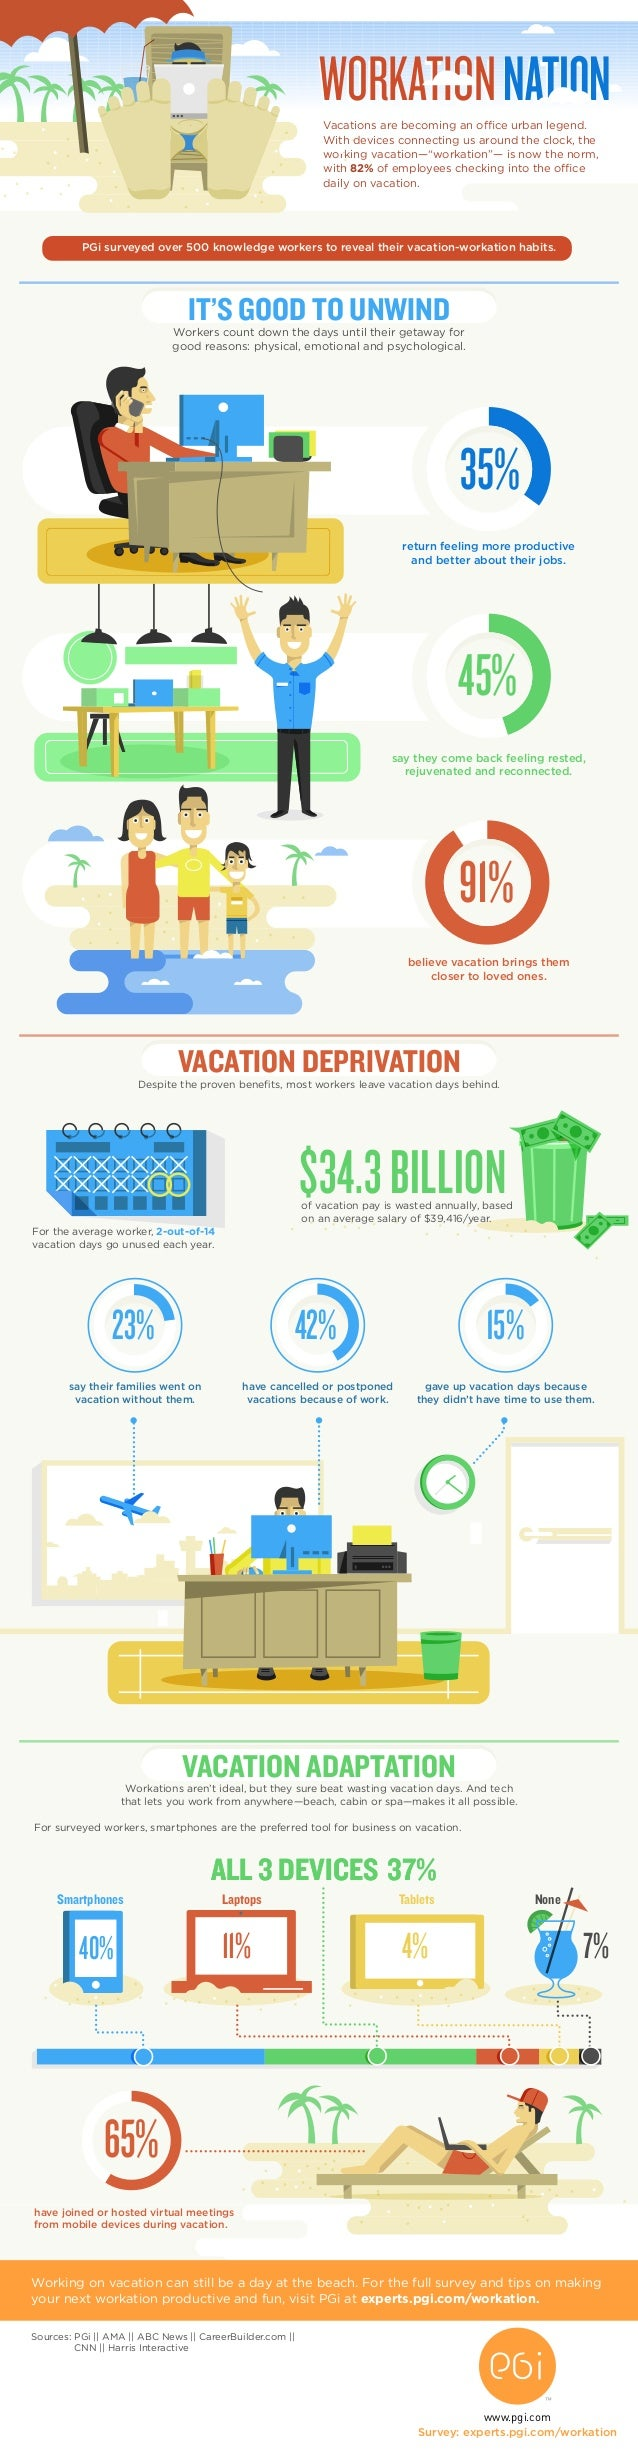 INFOGRAPHIC | Workation Nation